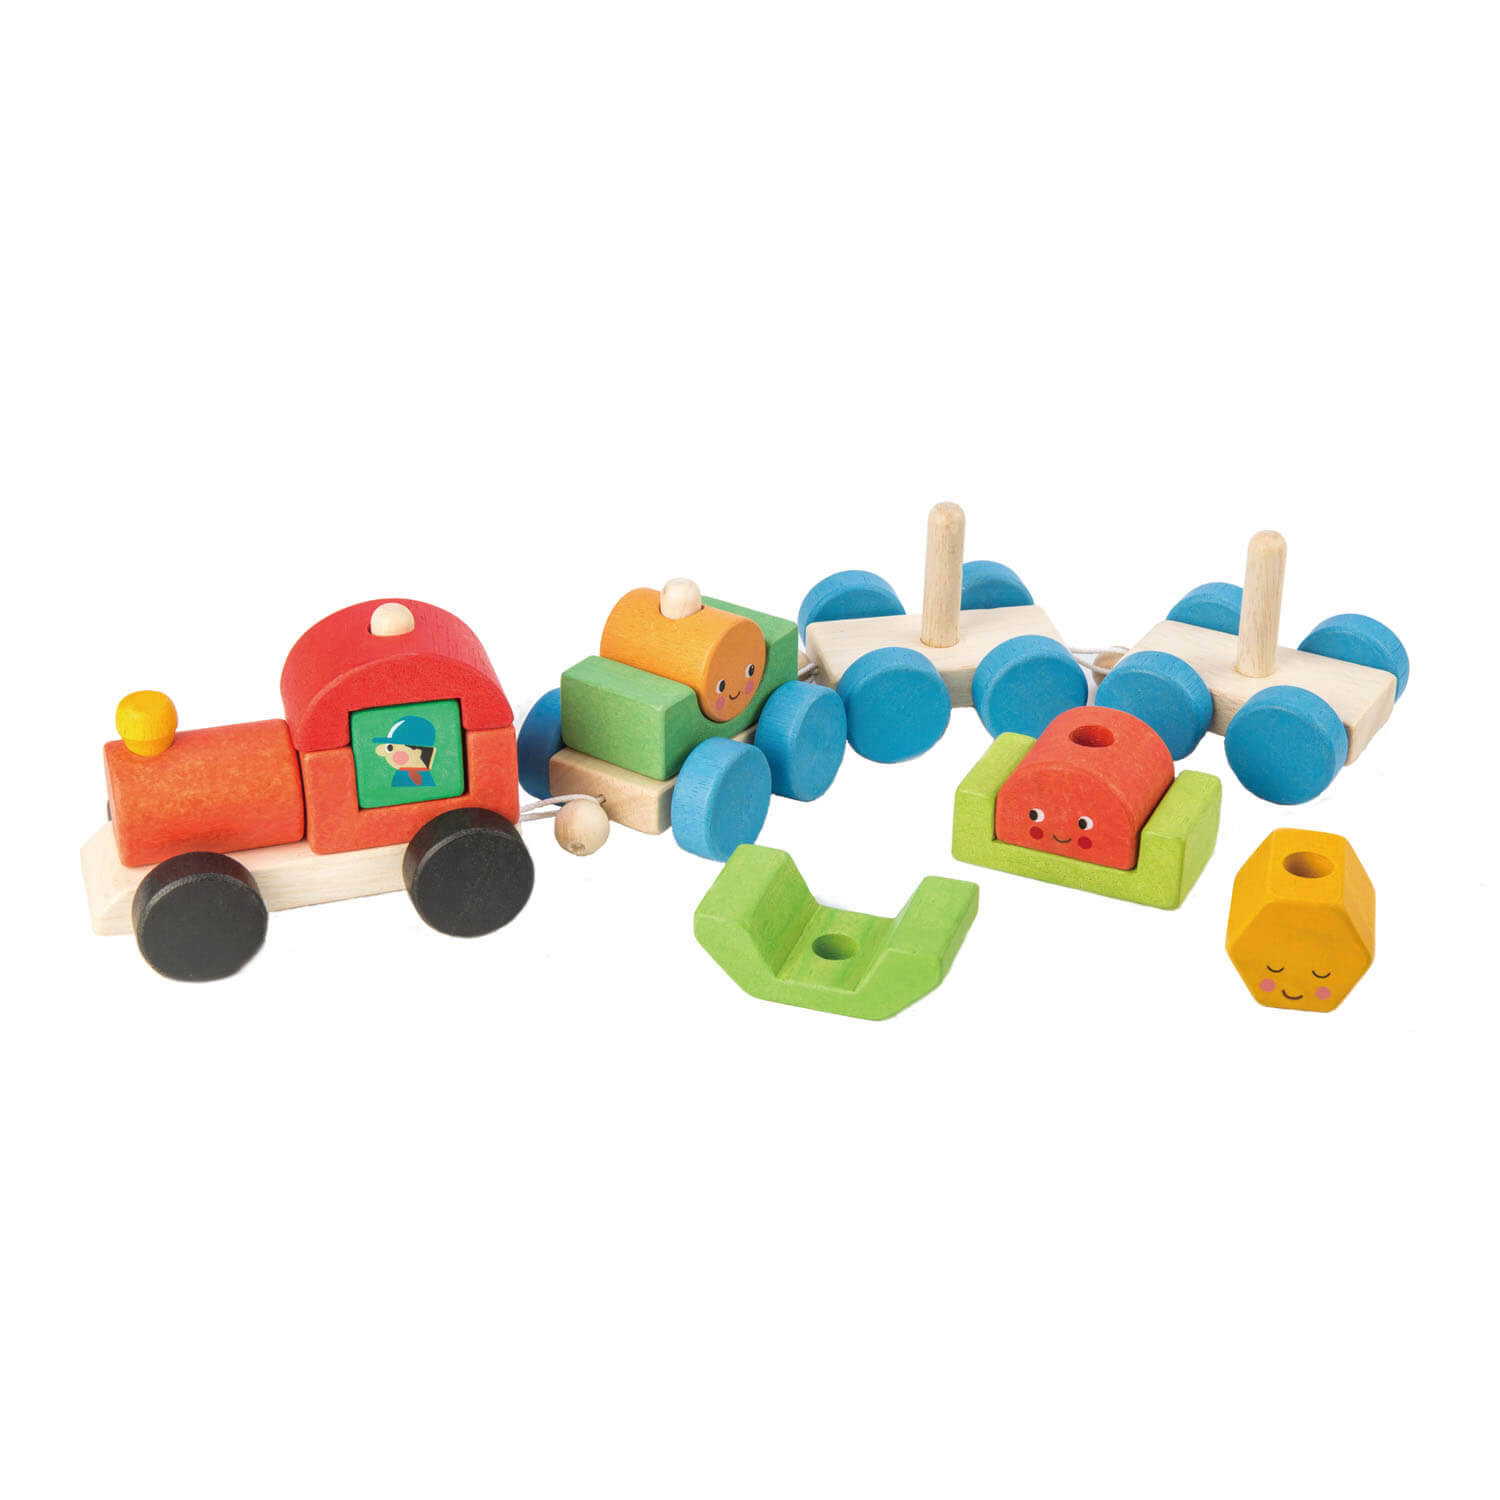 Tender Leaf Toys TL8337 Happy Train - Pull Along Sorting & Stacking Wooden Train